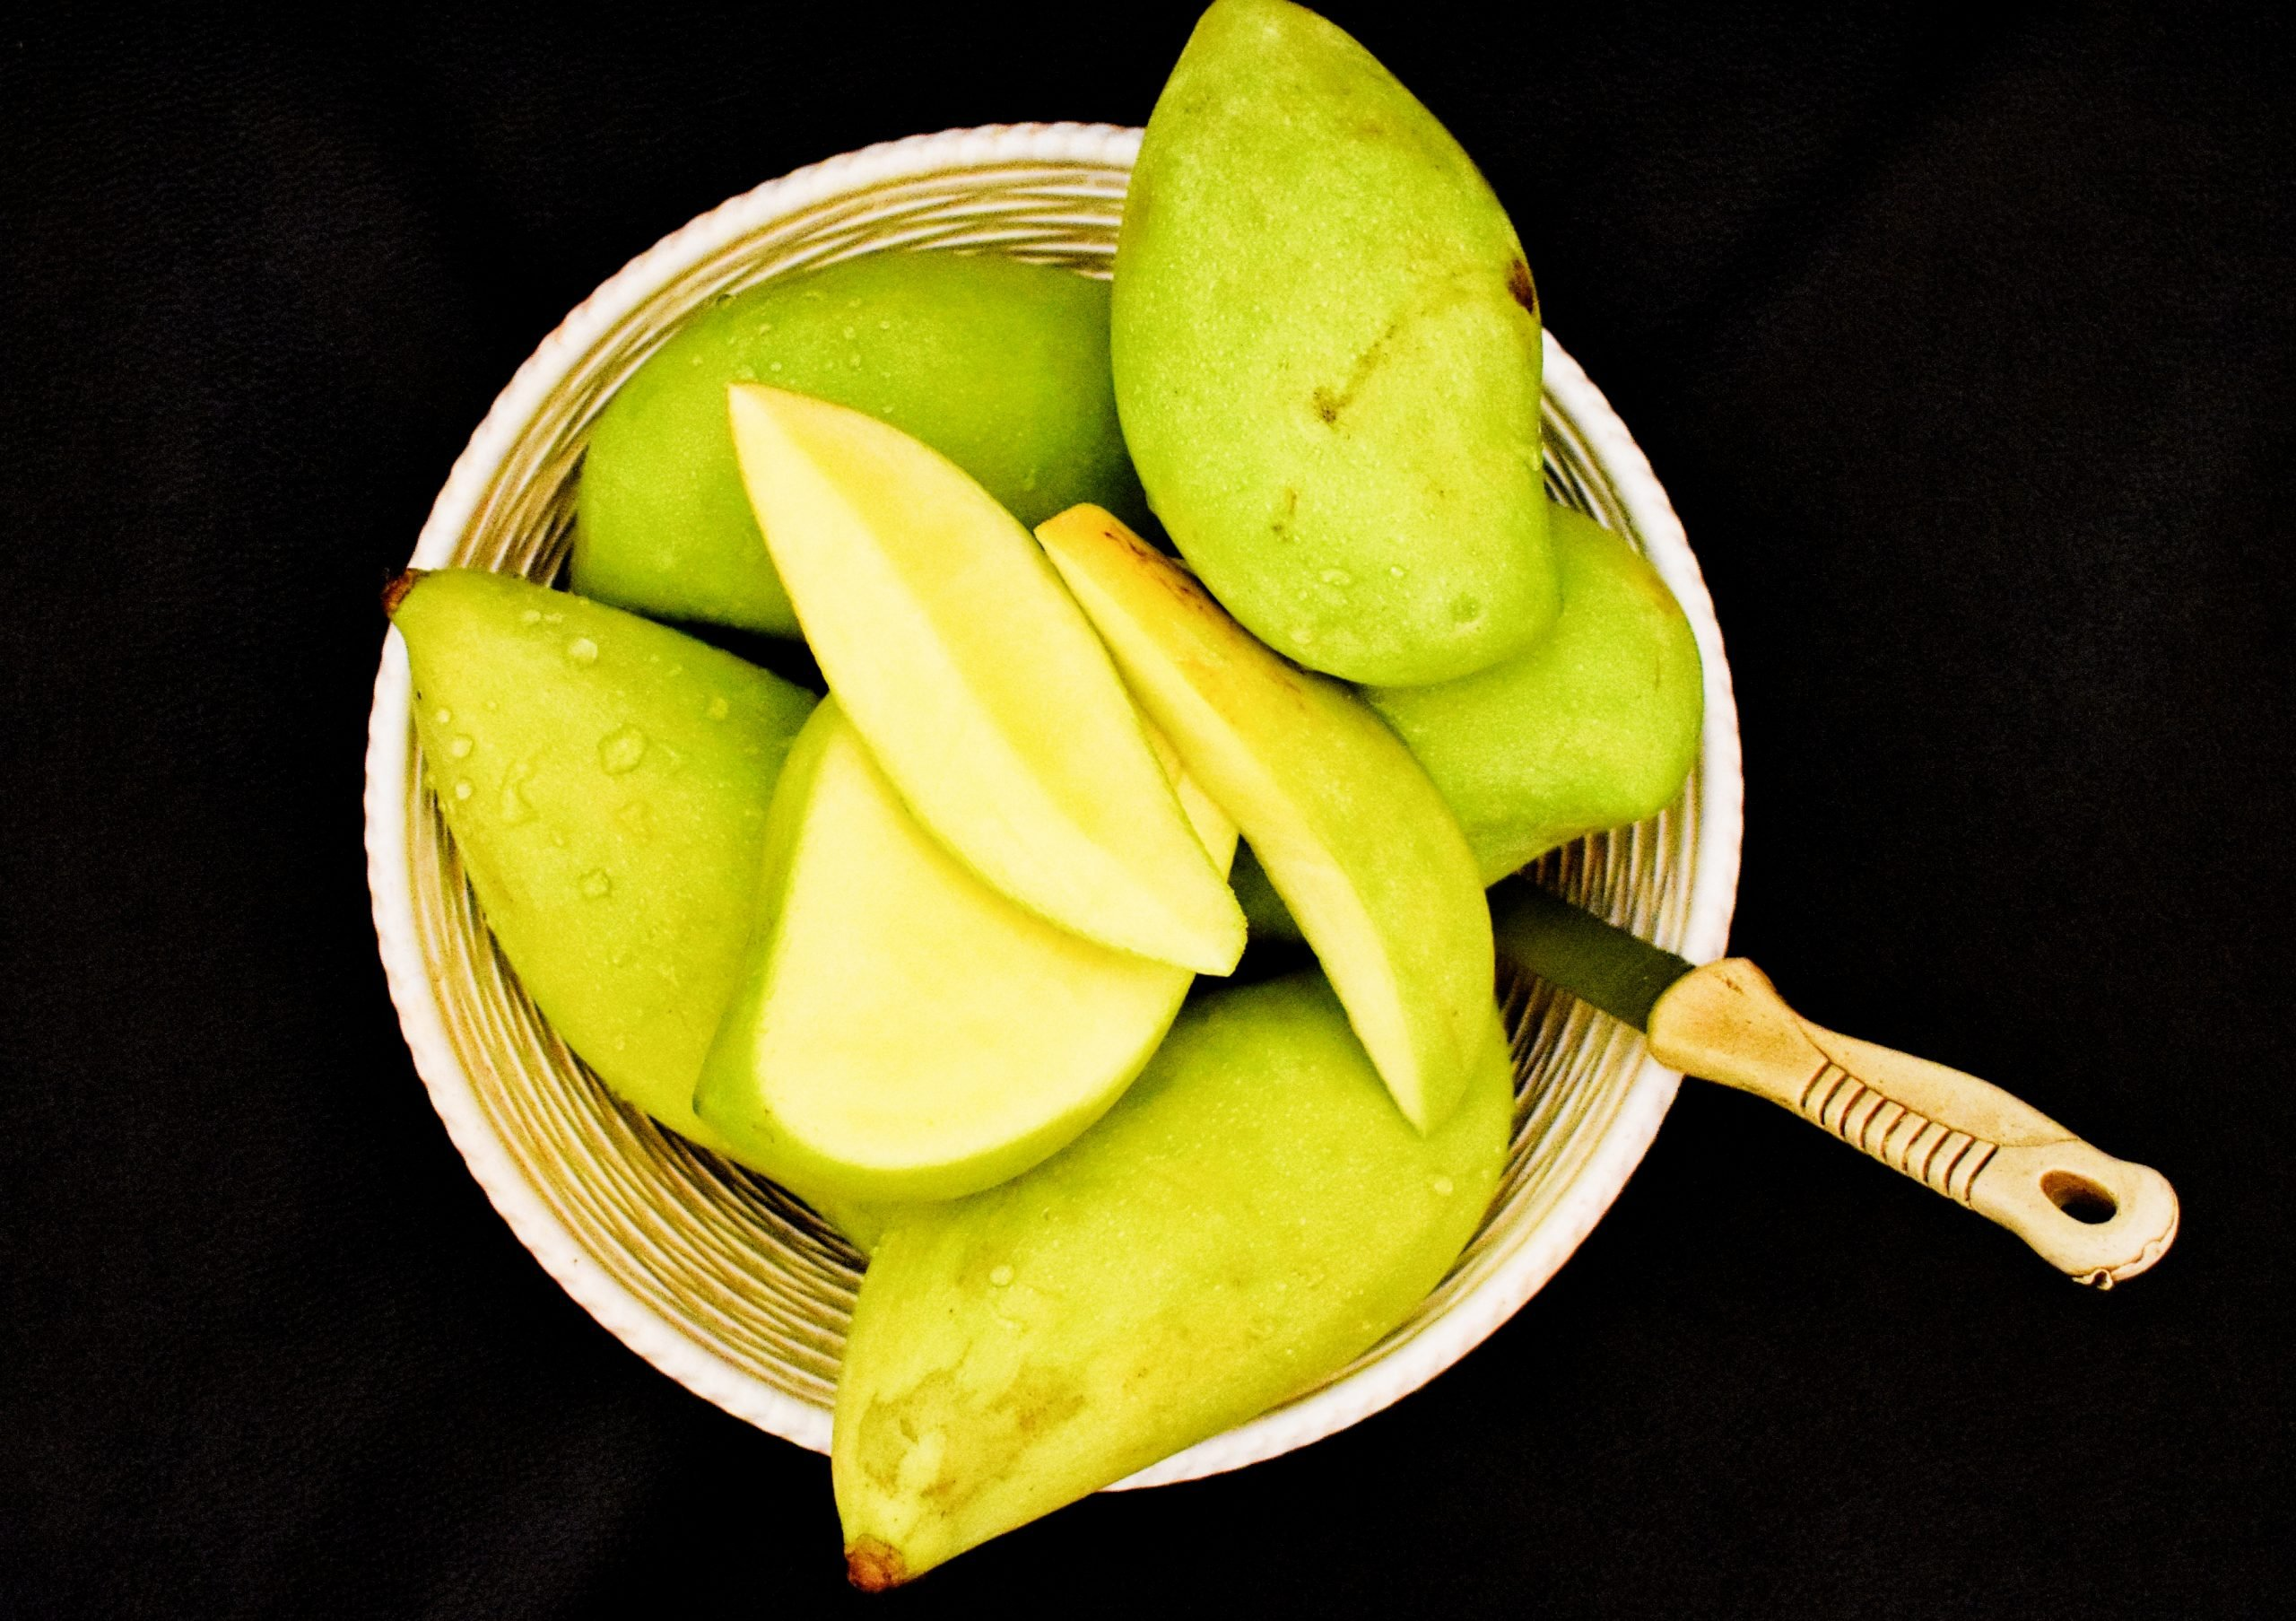 Green Mangoes in a basket